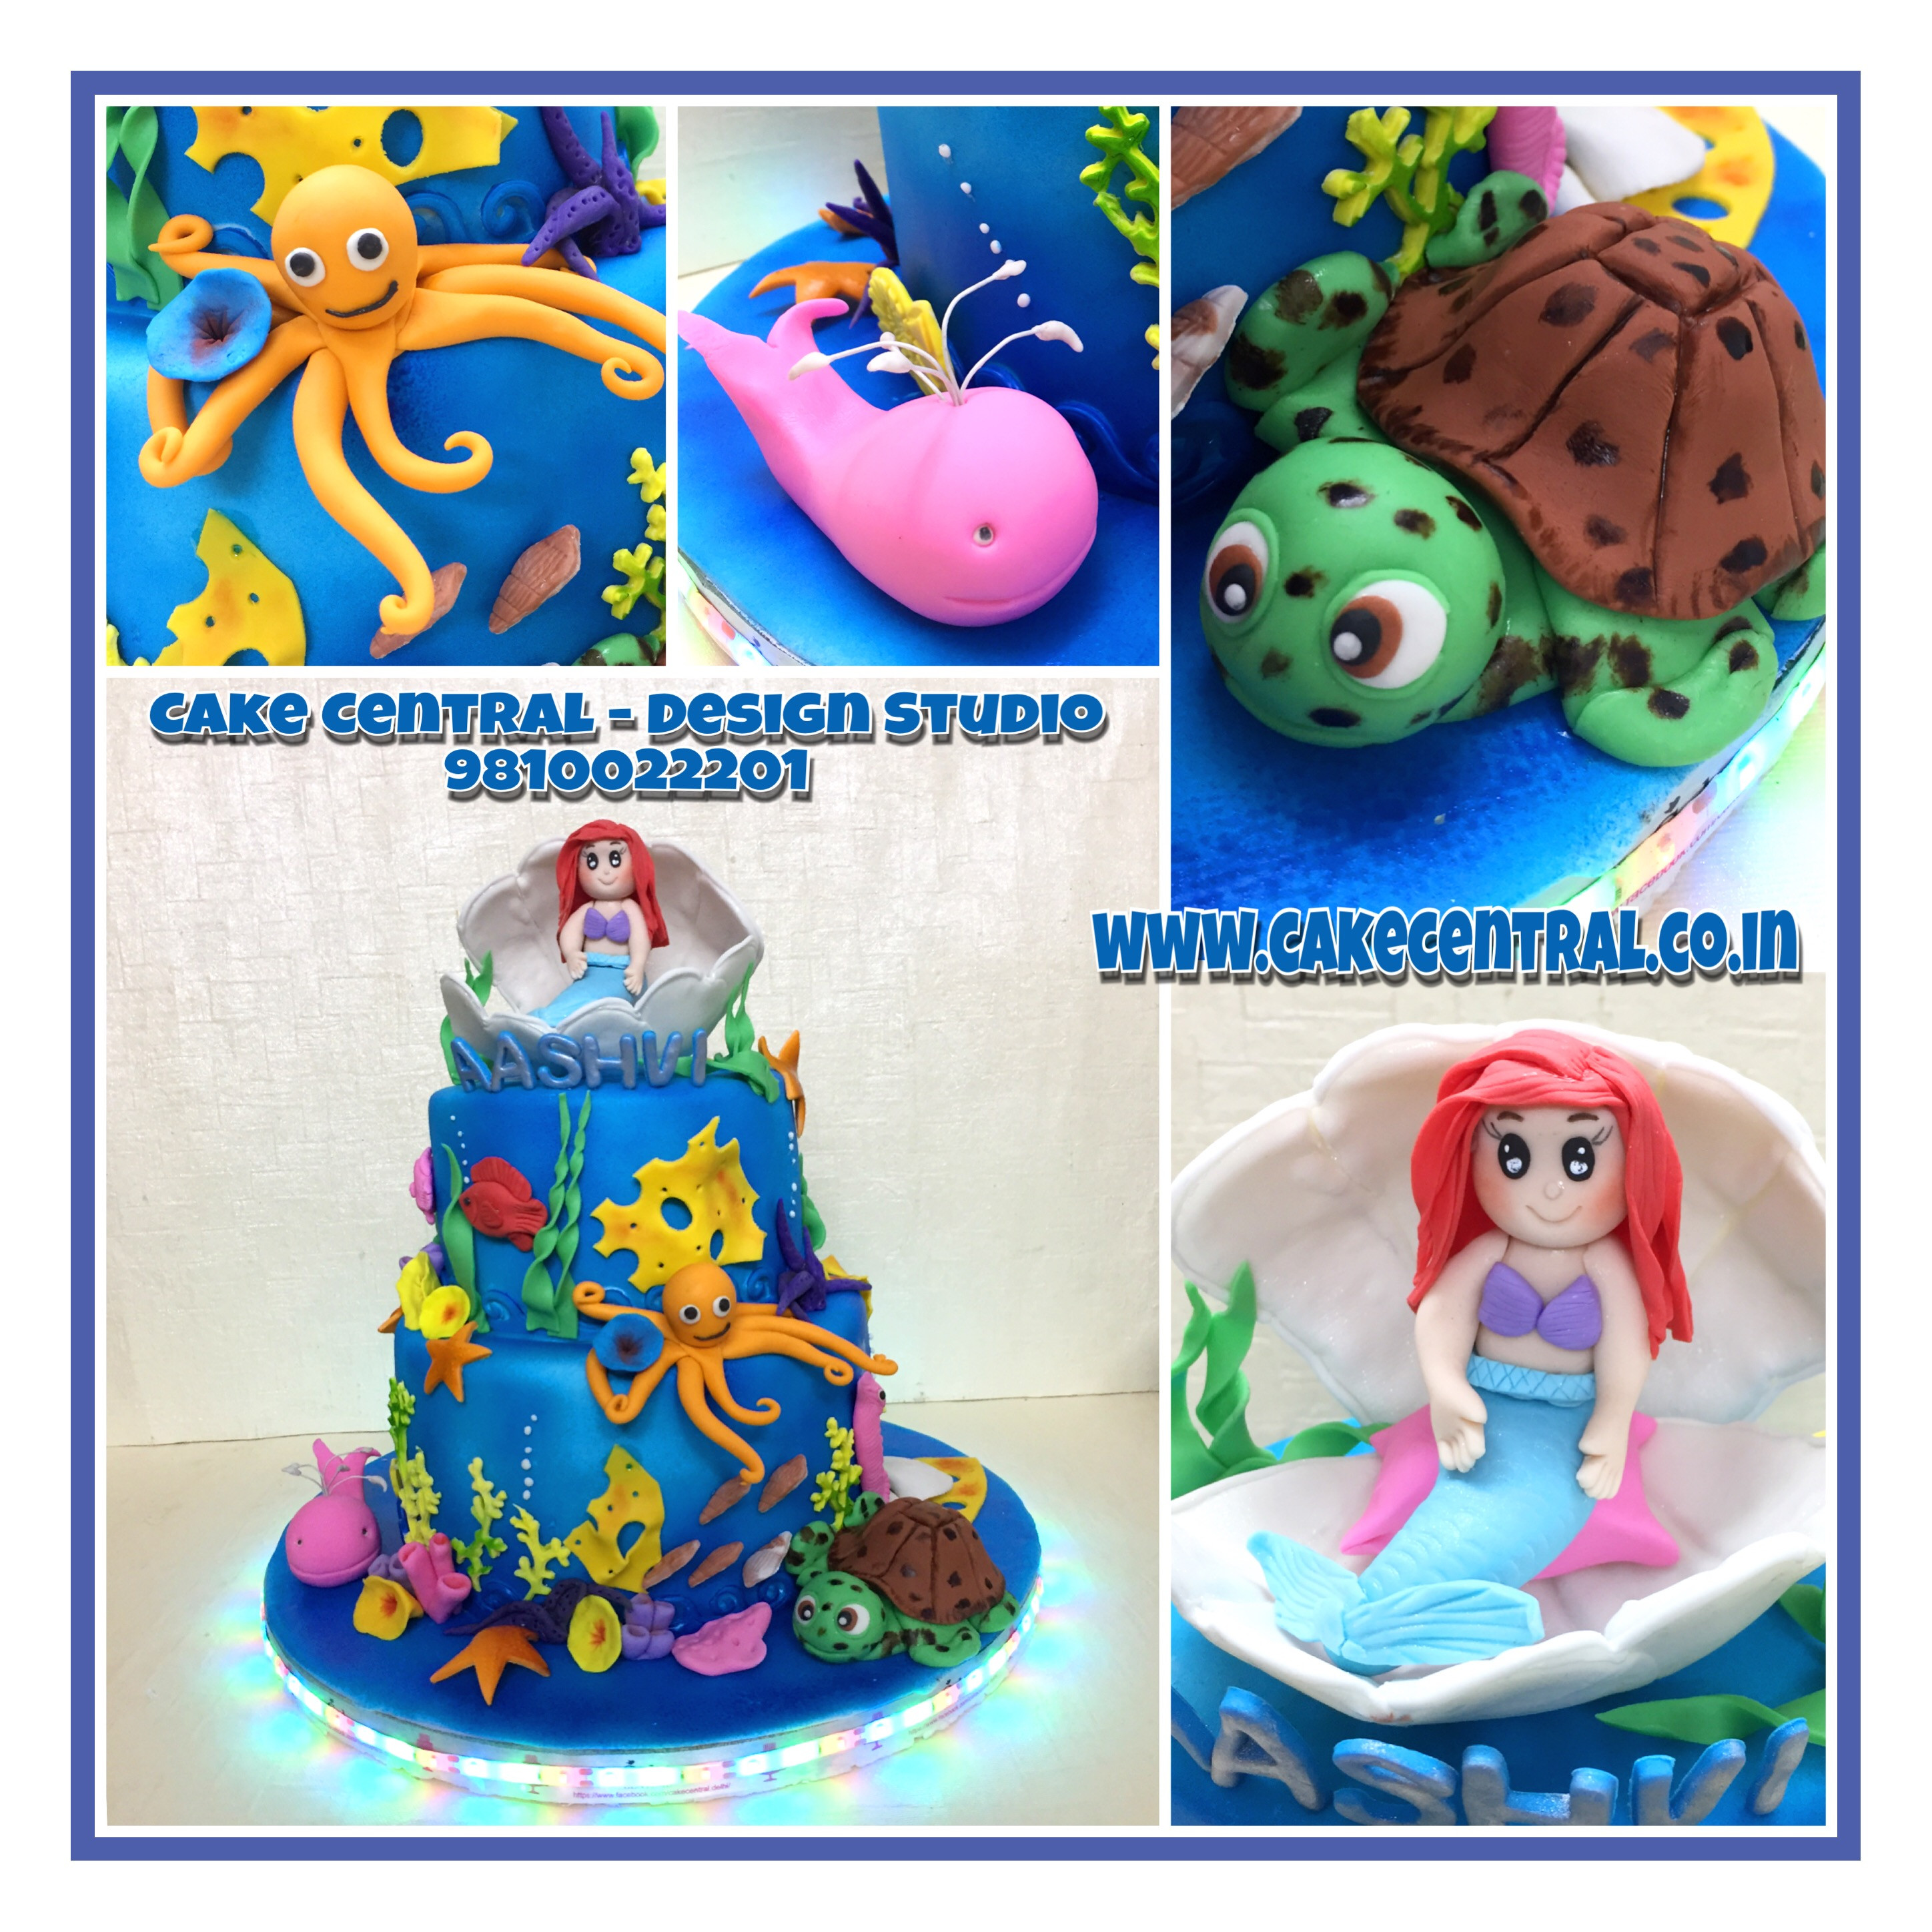 cute cake decorating supplies huge edible cake decorations clean wilton cake decorating classes abc cake decorating - Cake Decorating Supplies Near Me